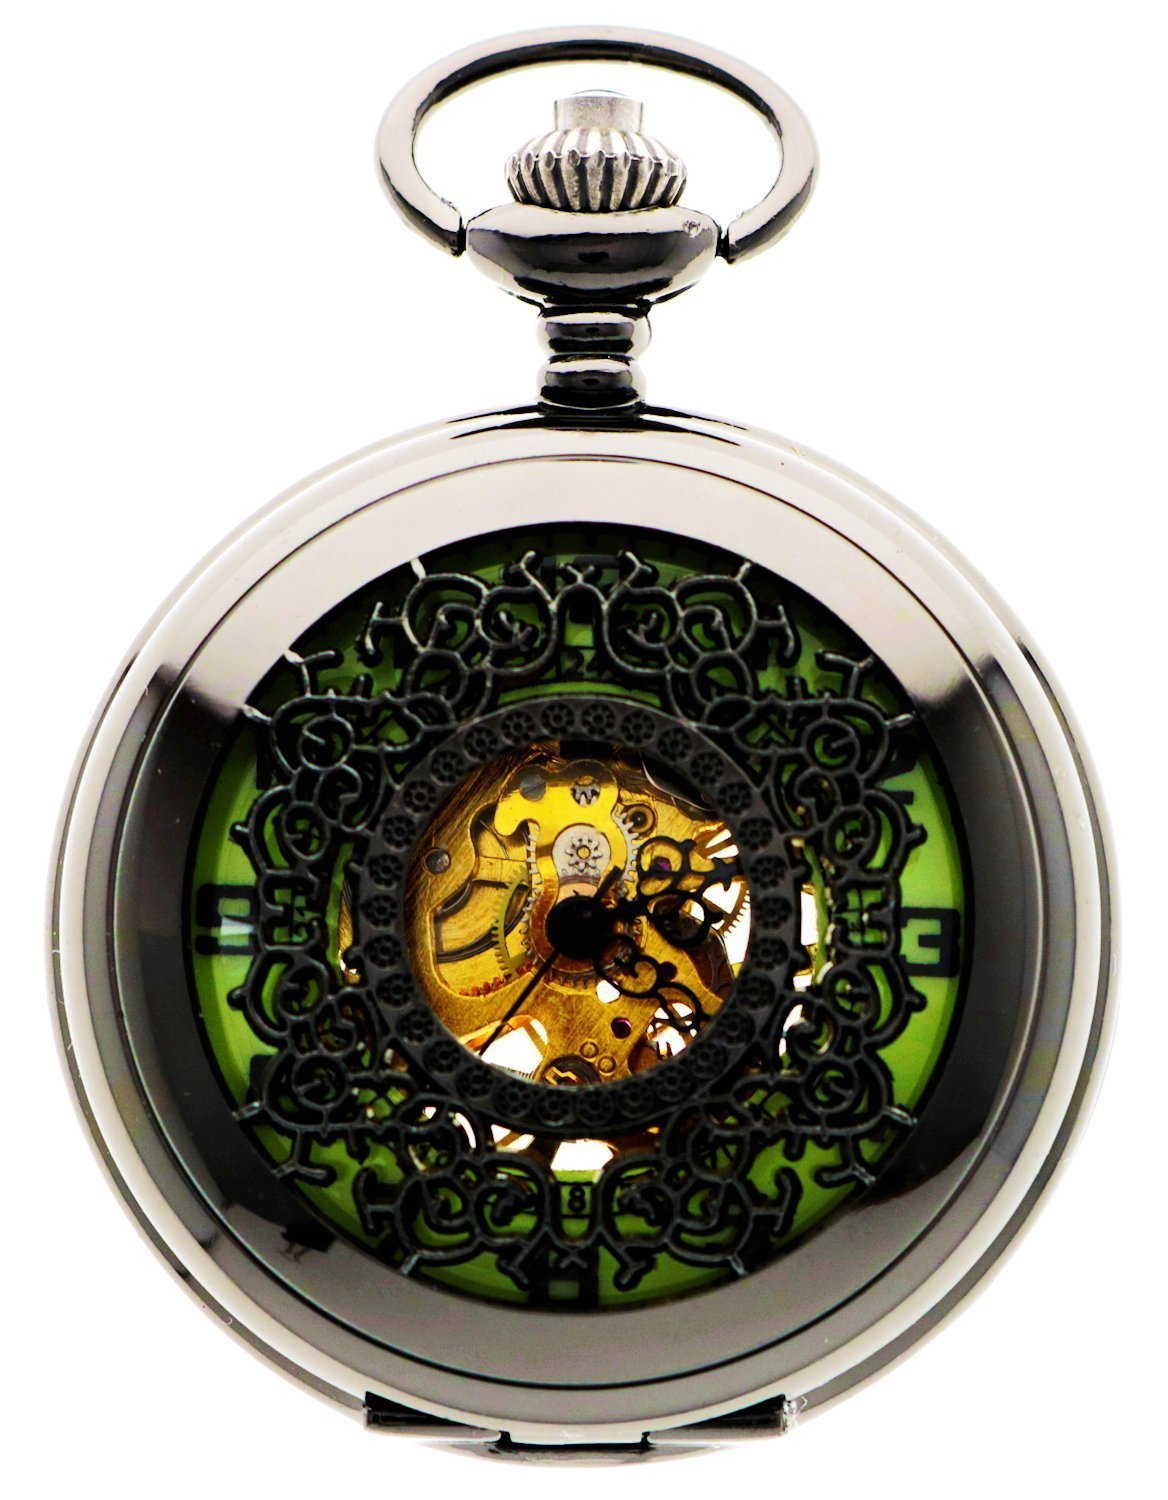 Old-fashioned Mechanical Pocket Watch & Chain with Roman Numerals (no Batteries @ Sons of Odin™ -